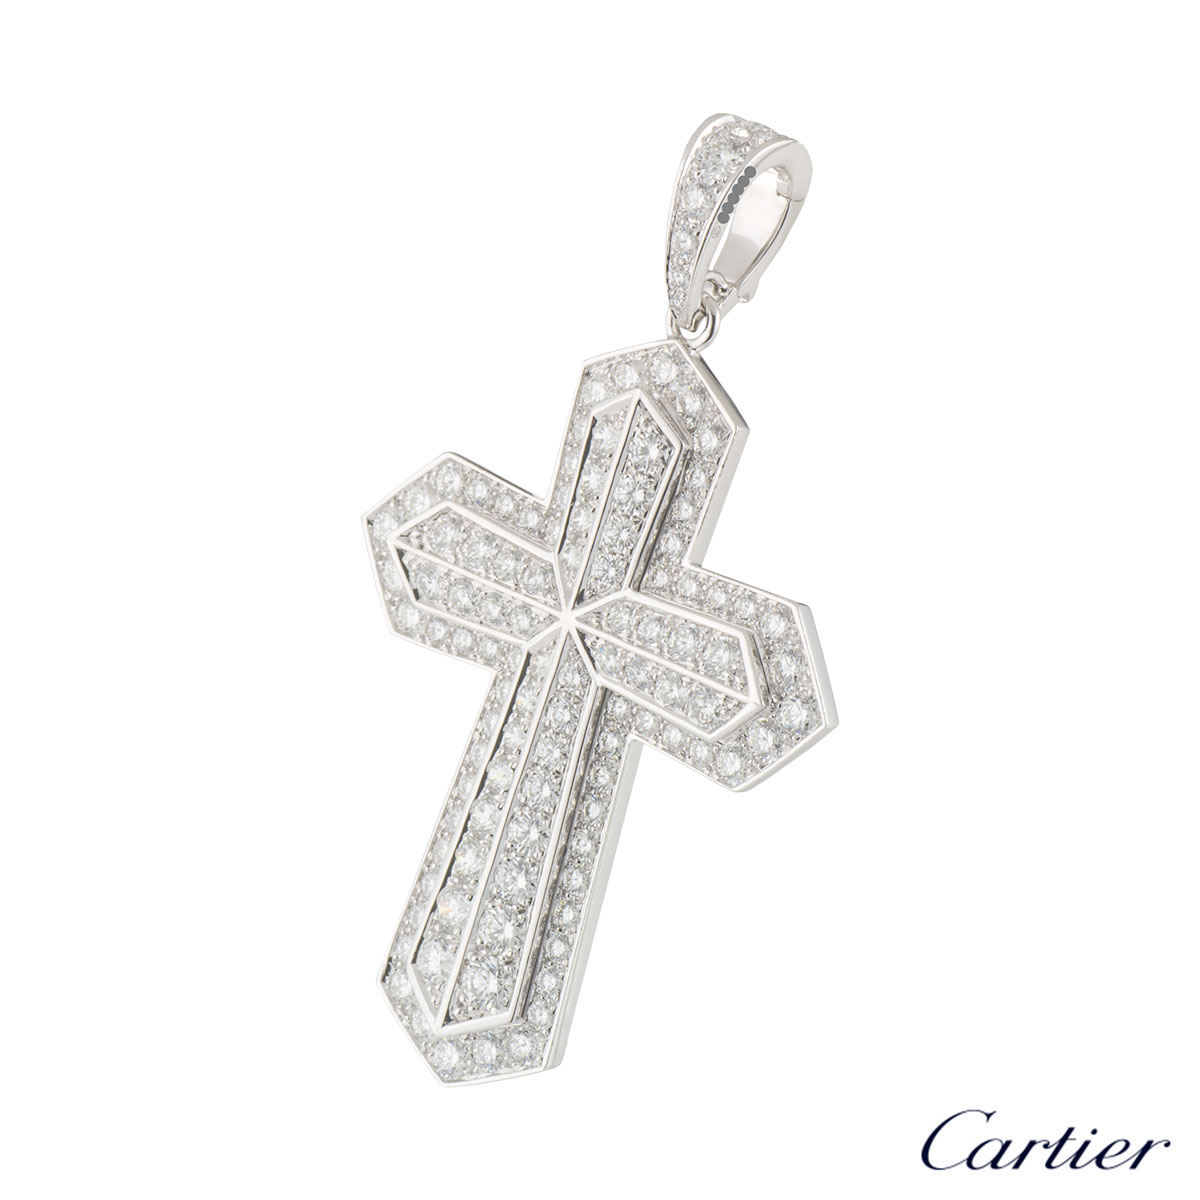 Cartier White Gold Diamond Cross Pendant